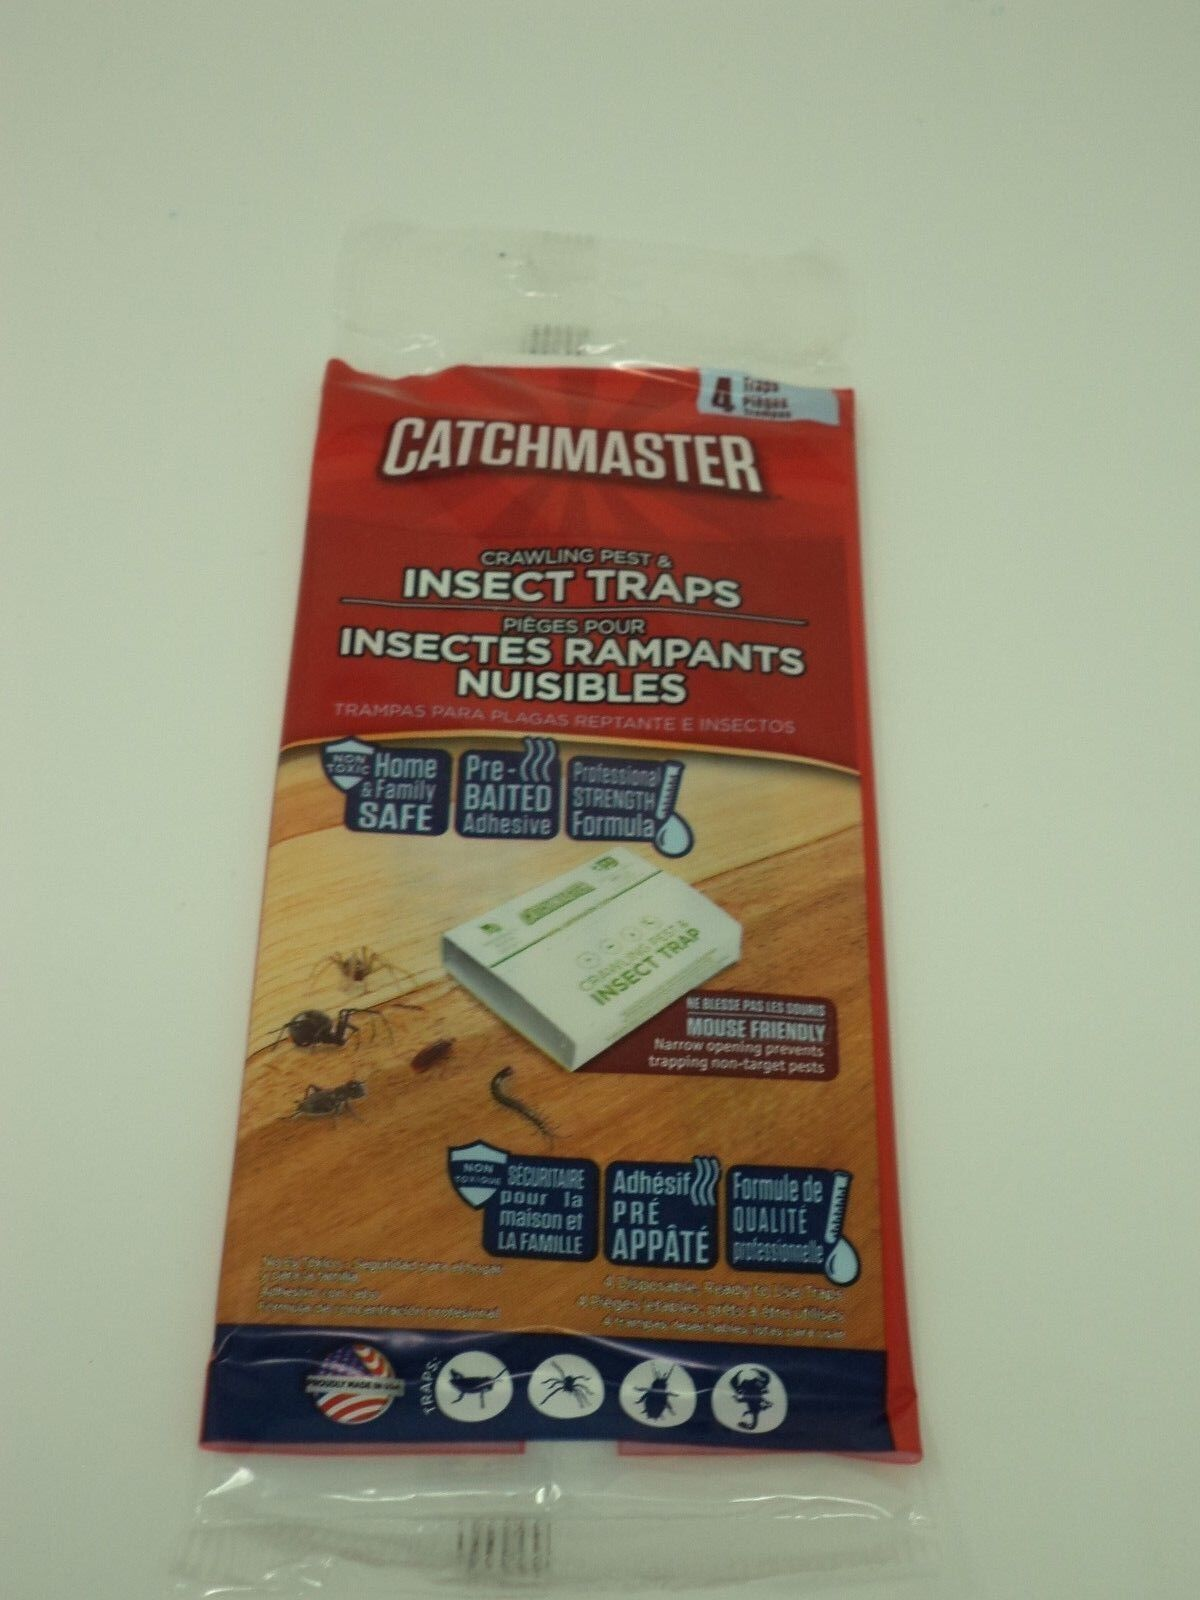 Catchmaster Spider & Insect Traps Pest Control ~ Glue Traps